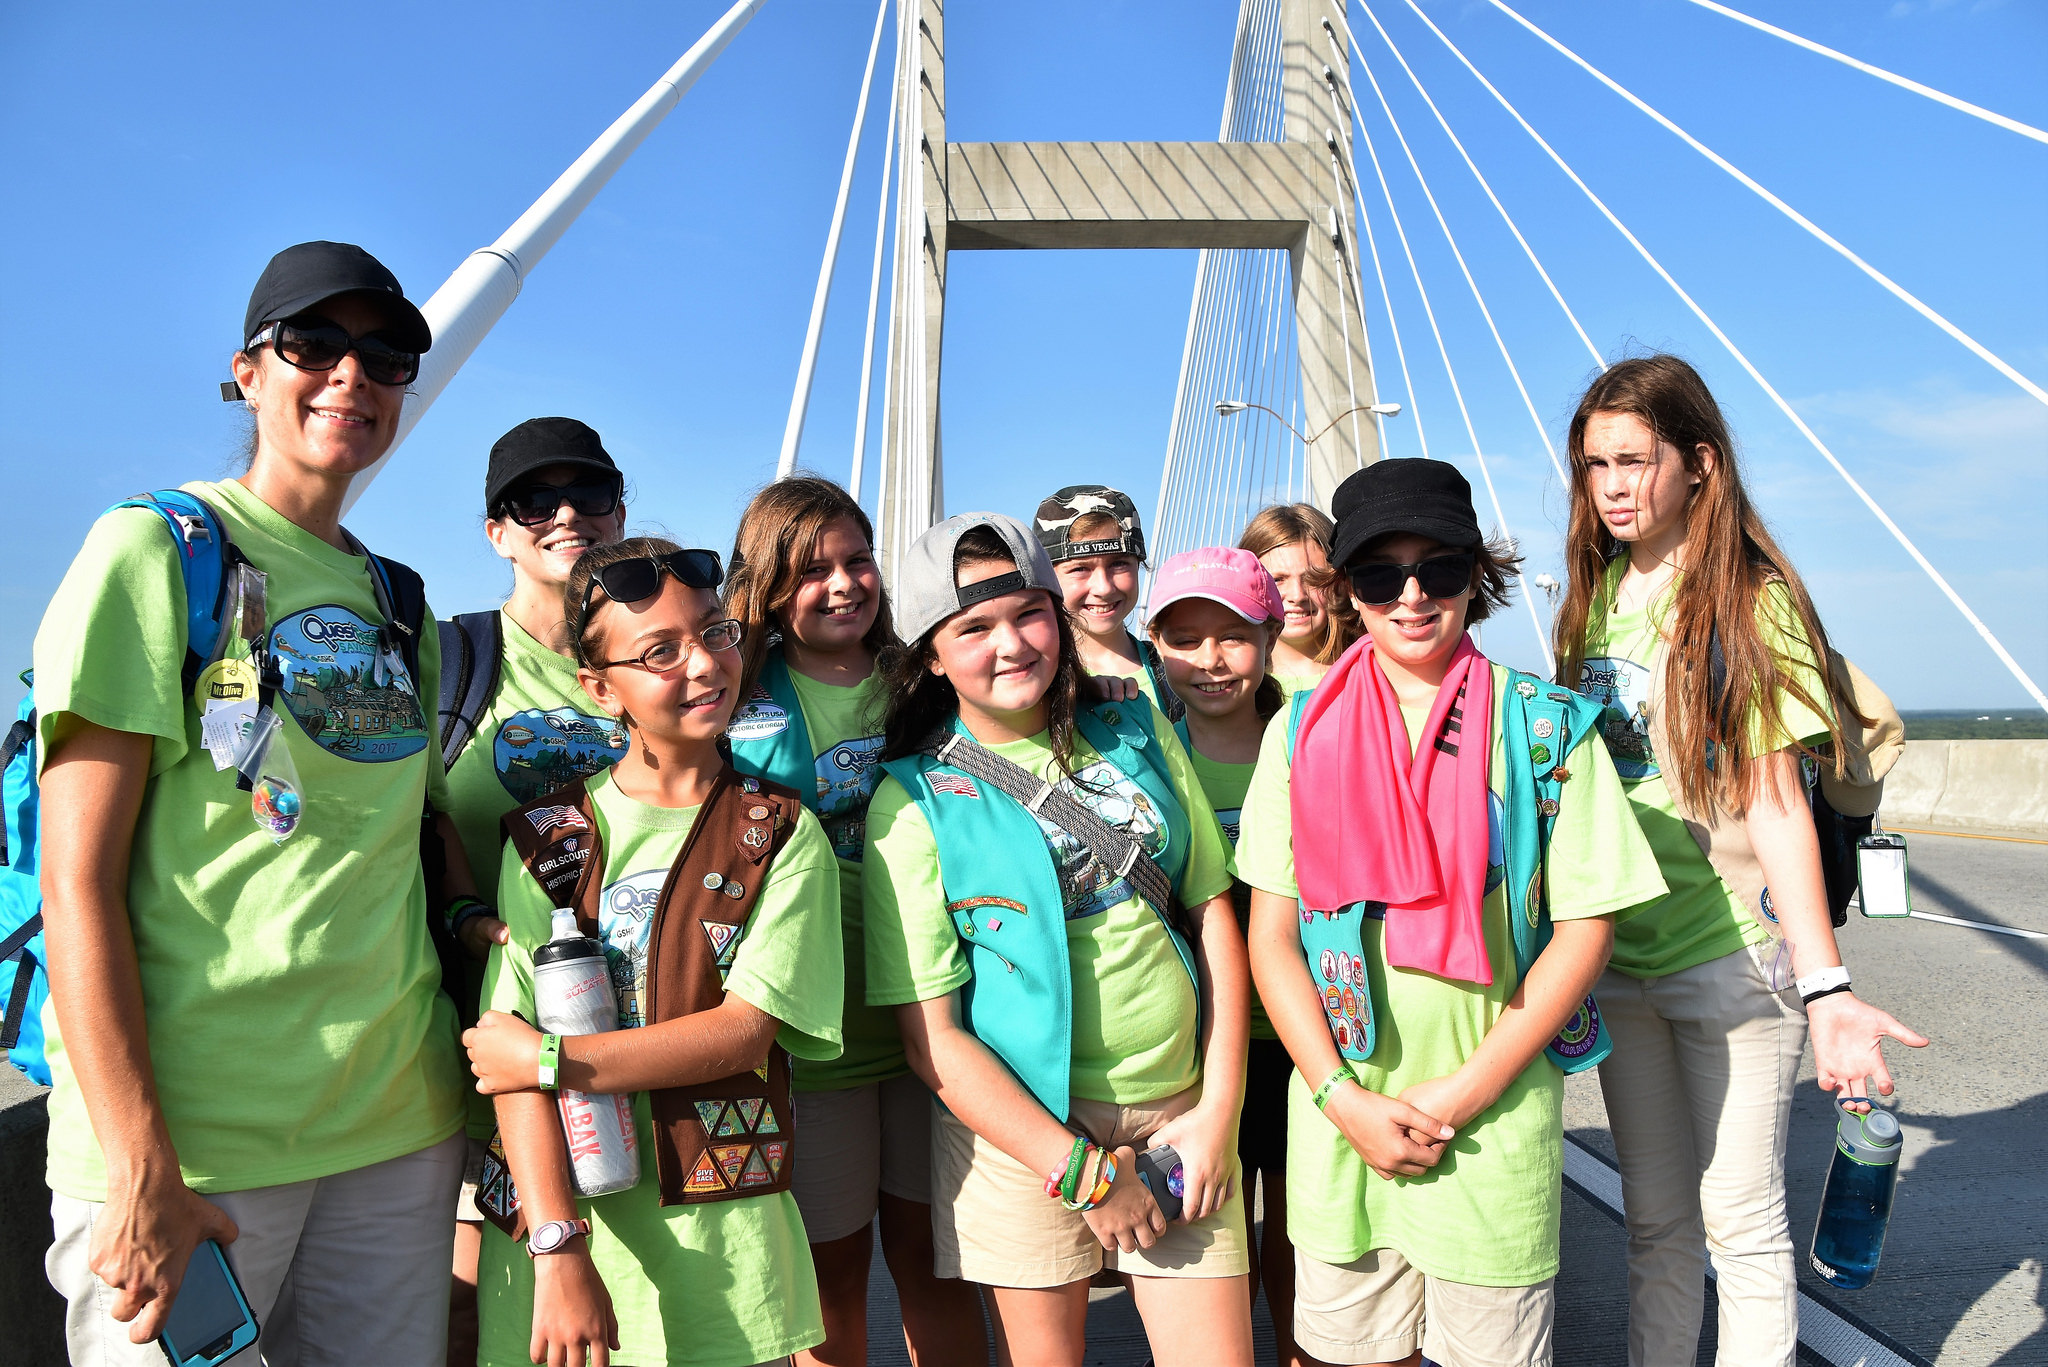 Girl Scouts QuestFest – Epic Adventure Weekend from North Carolina Lifestyle Blogger Champagne Style Bare Budget